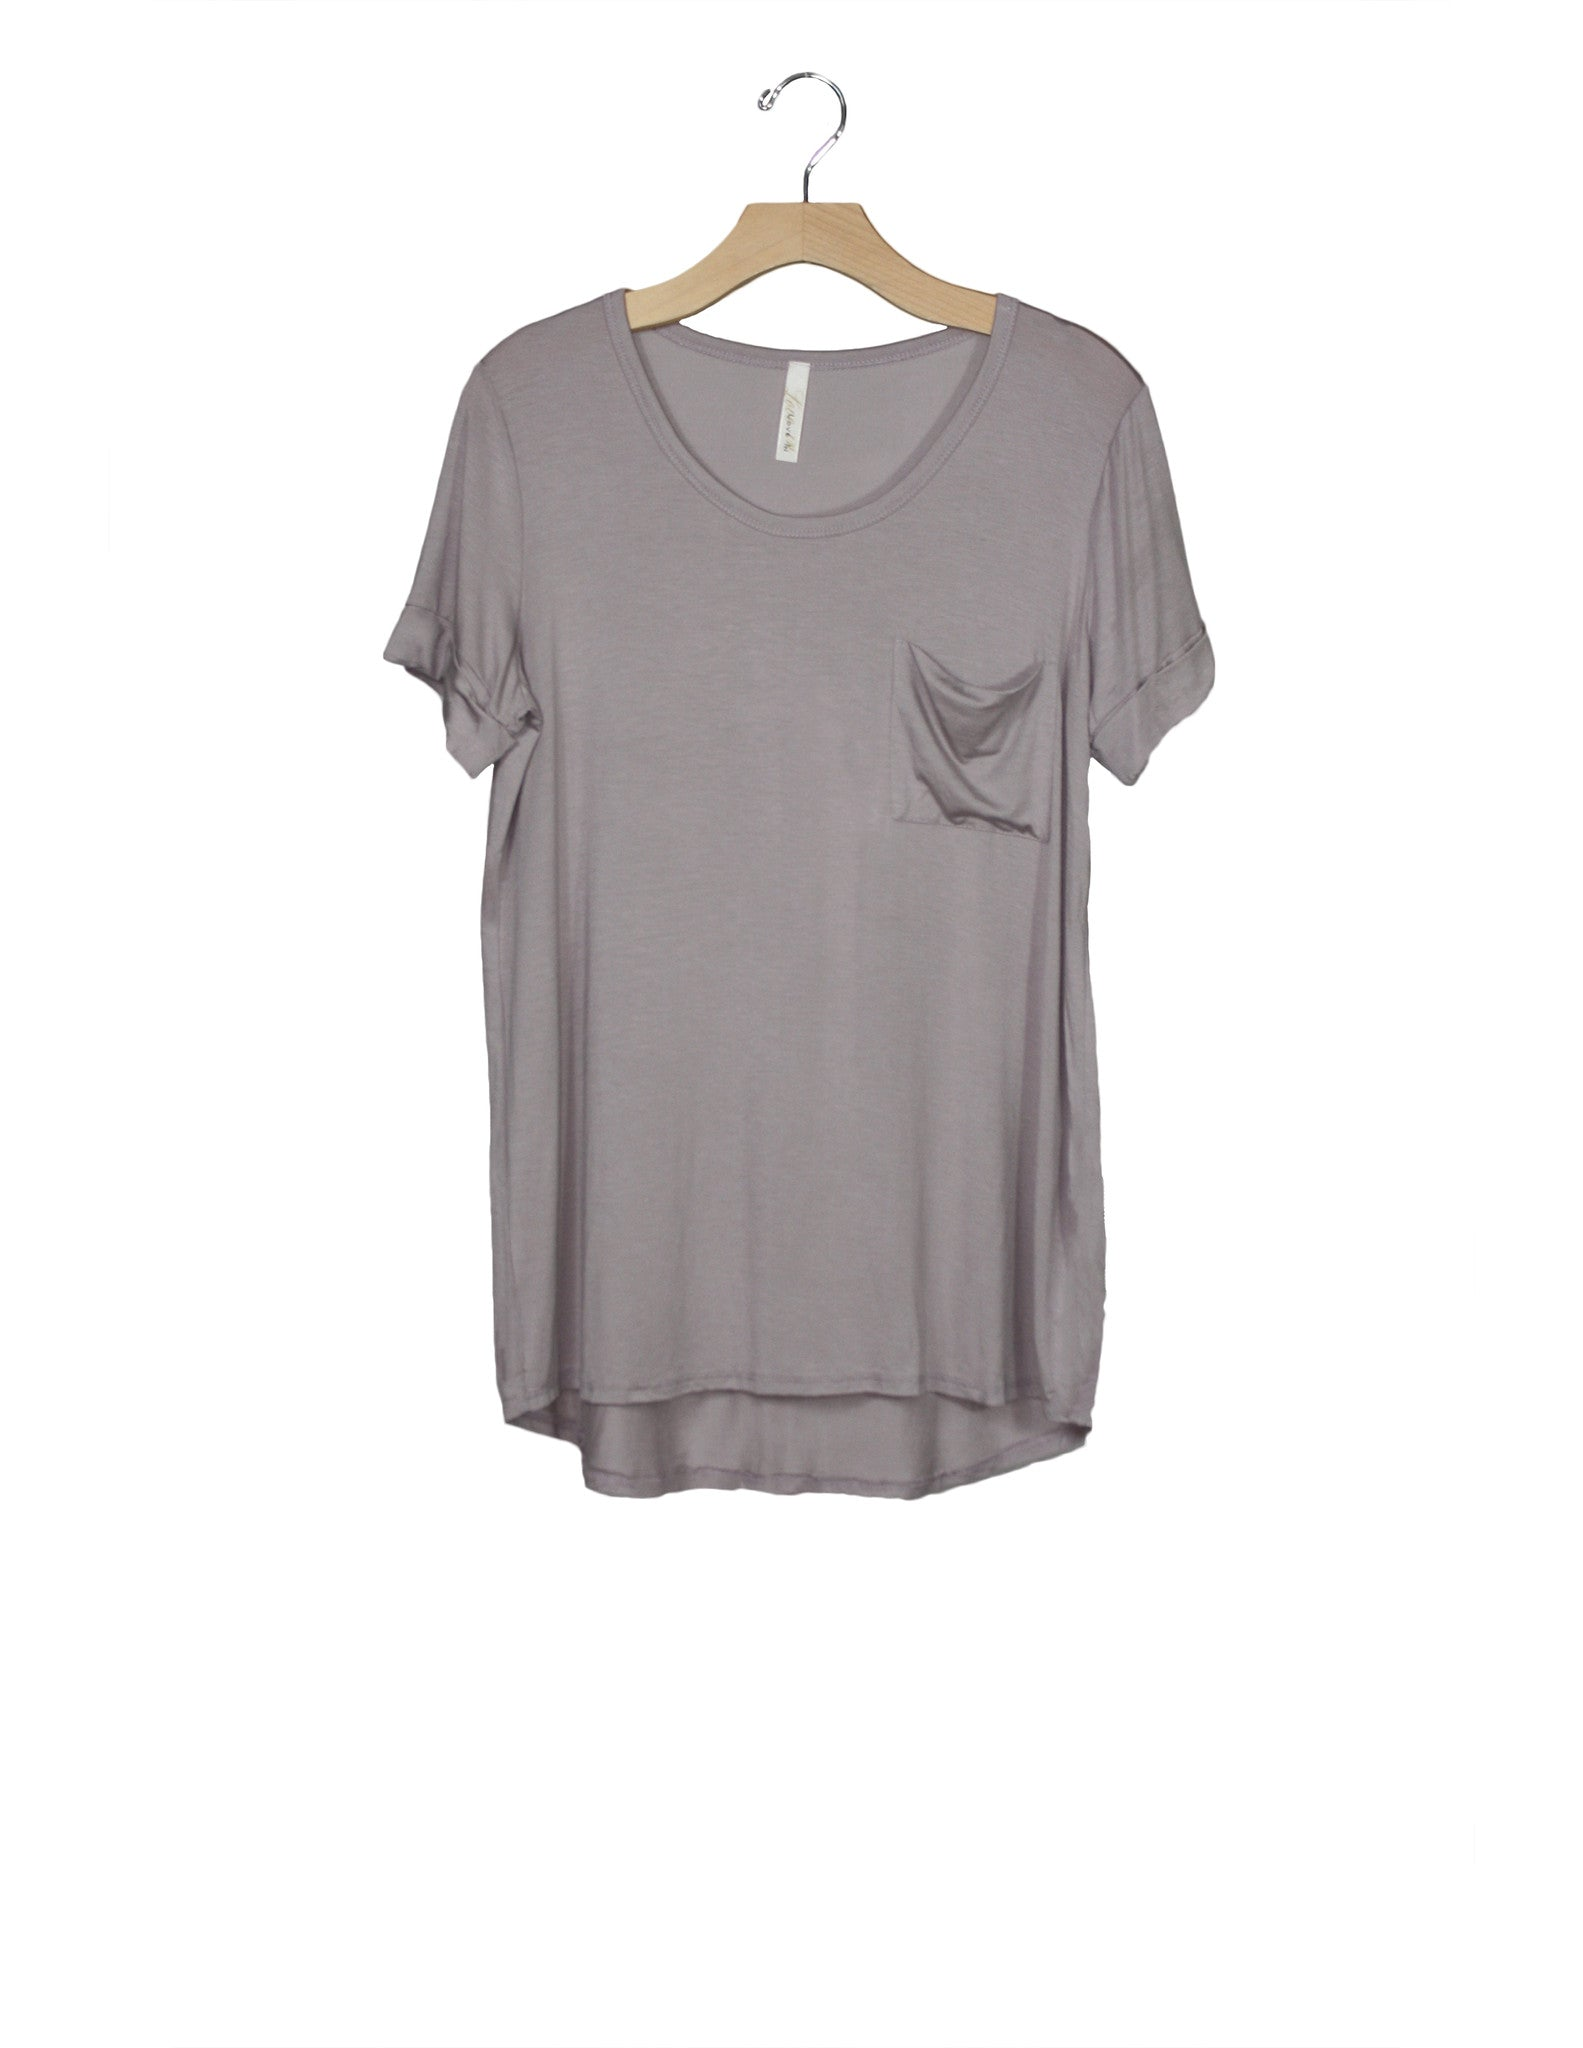 Lilac Grey Top / Ethical Fashion